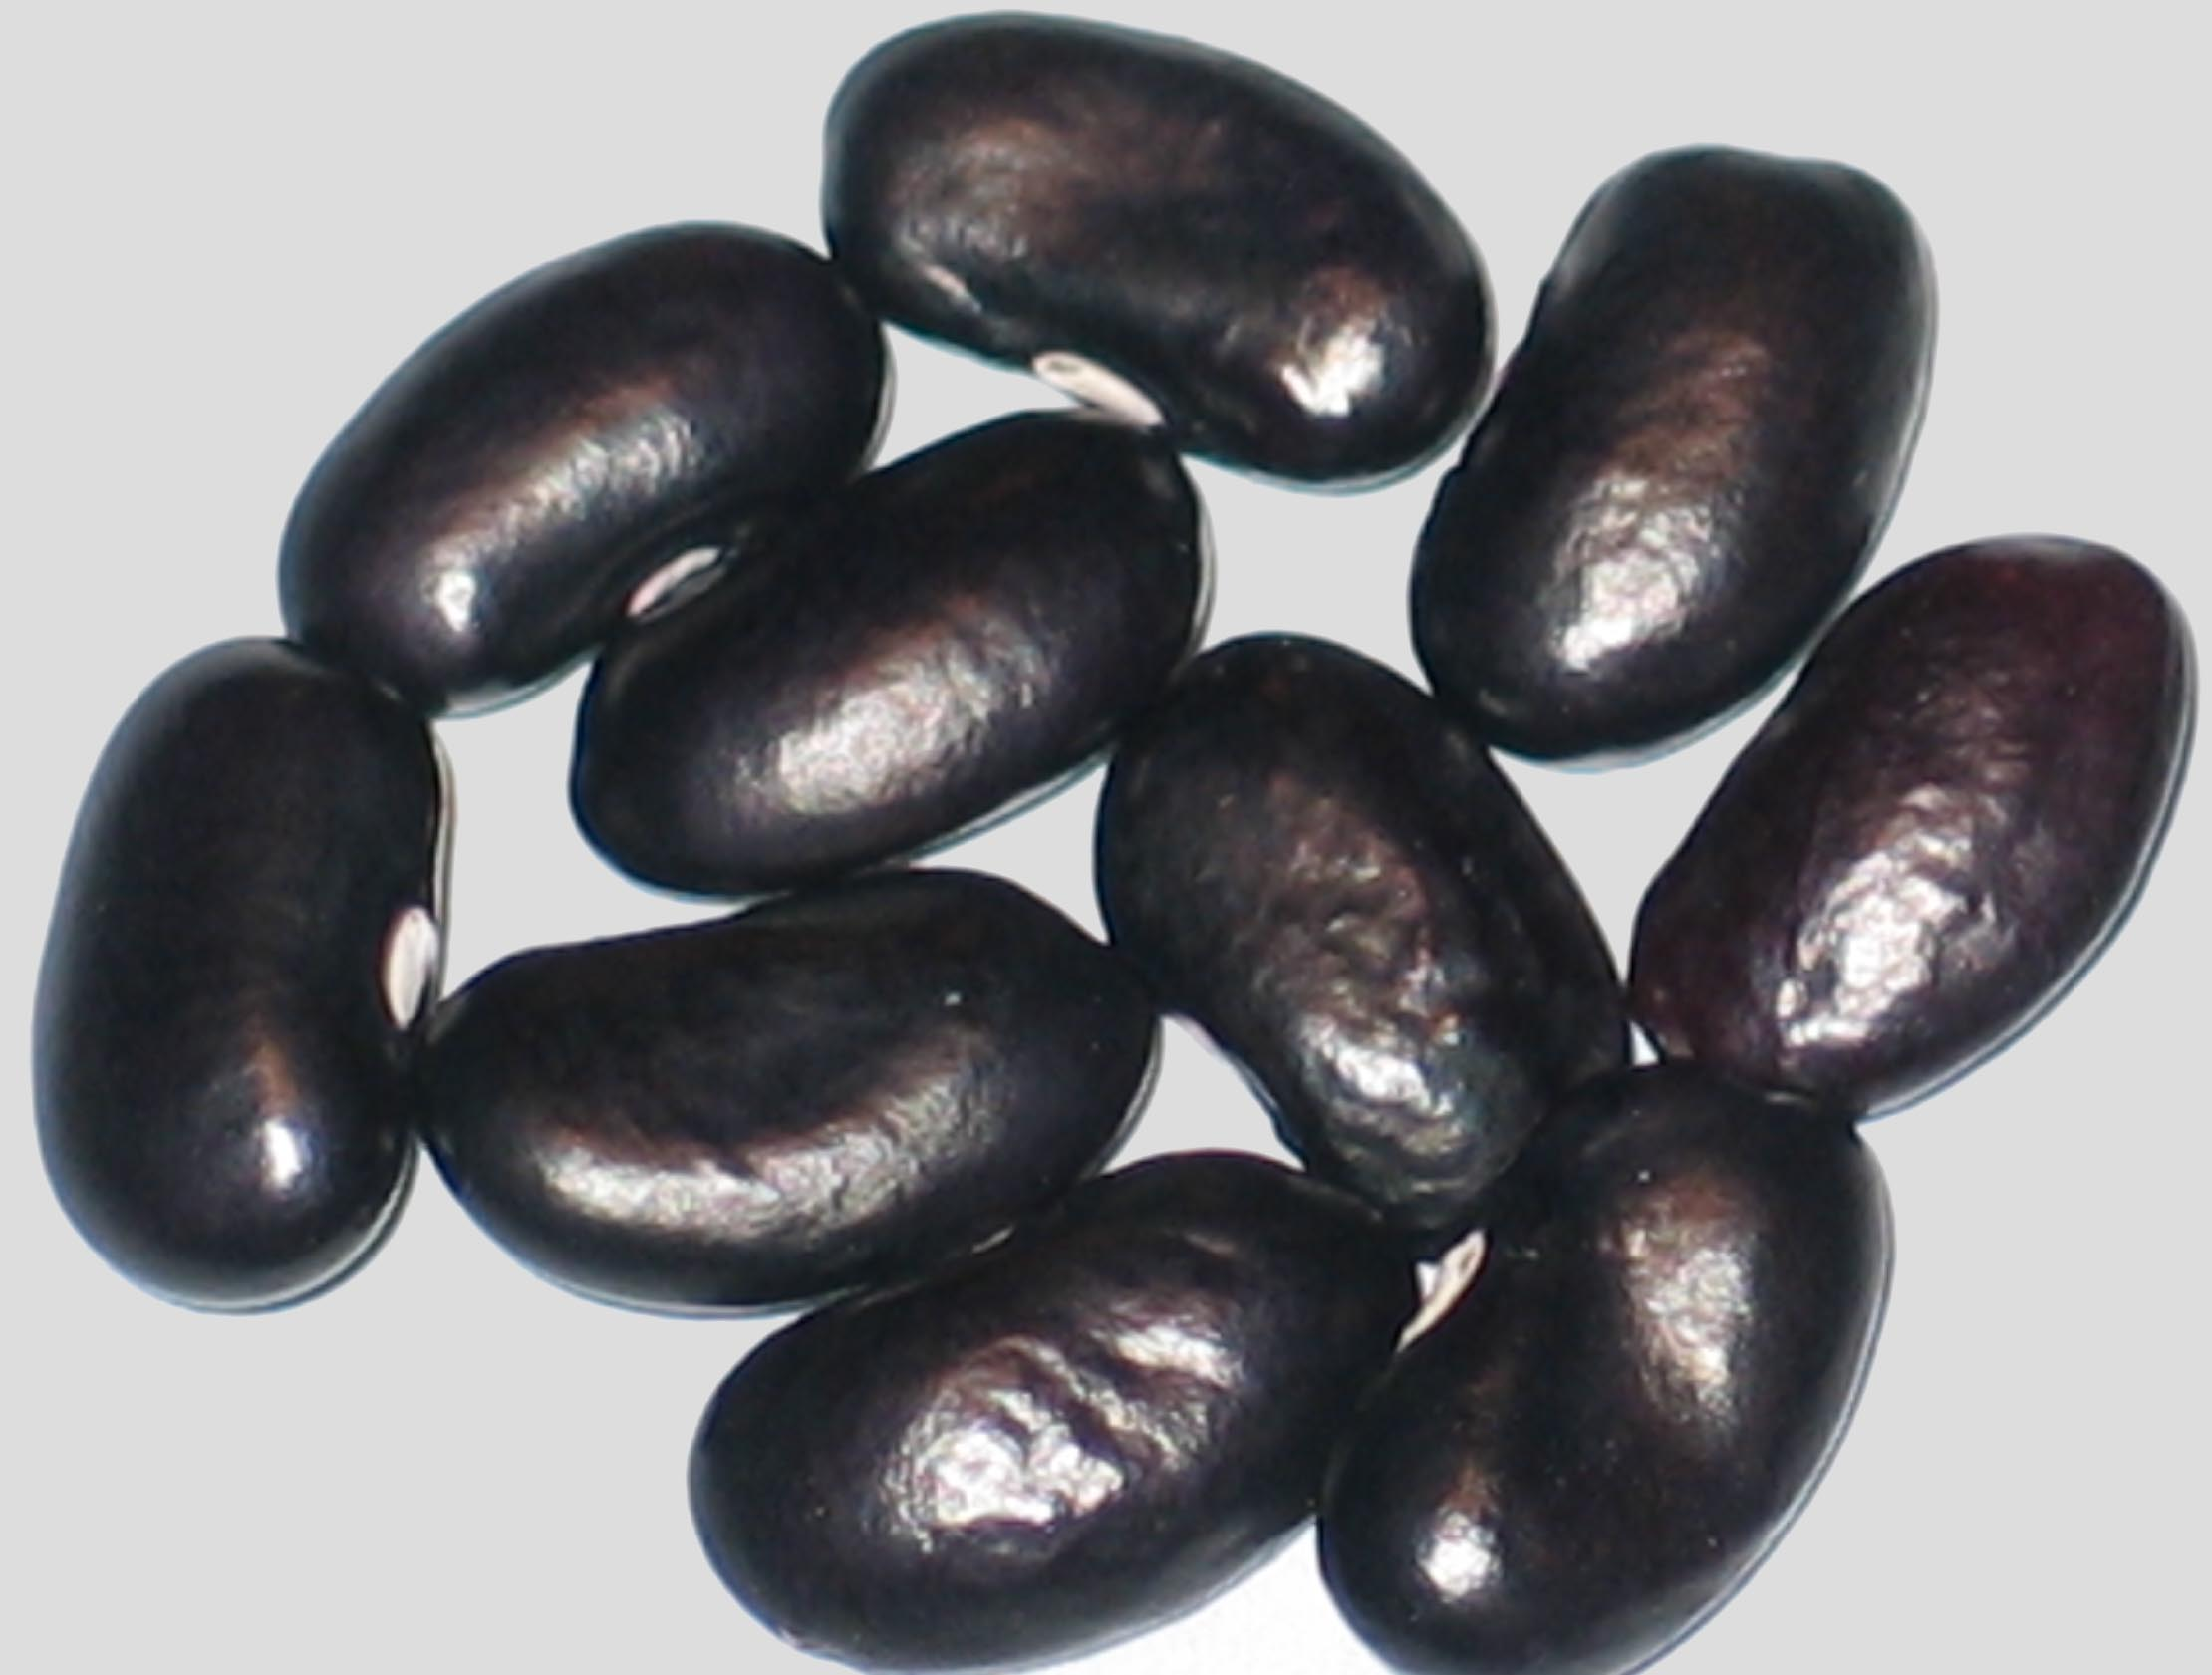 image of No Name WB-PKT #45 beans